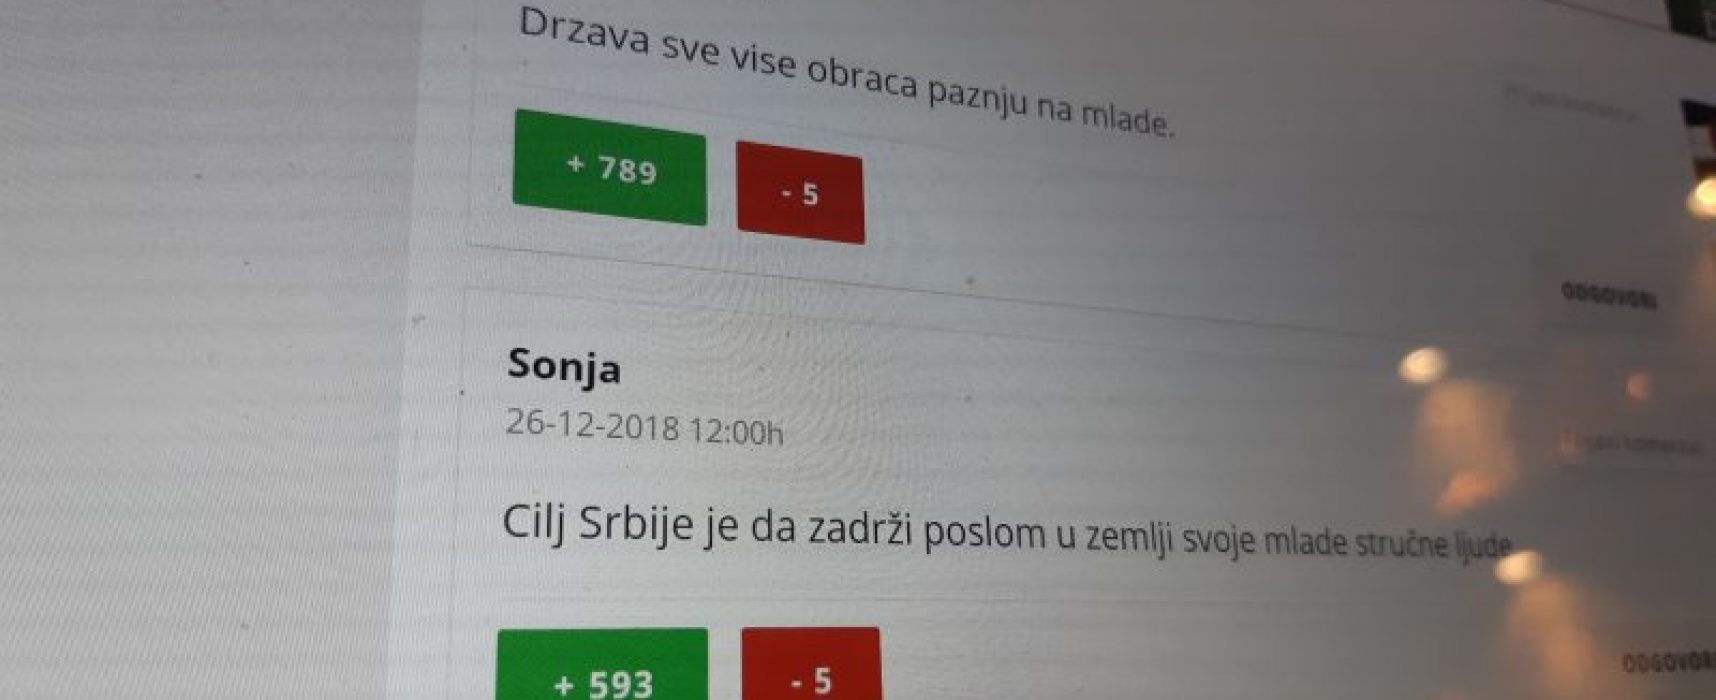 Serbian journalists expose a ruling party bot application used to manipulate readers' comments on media websites